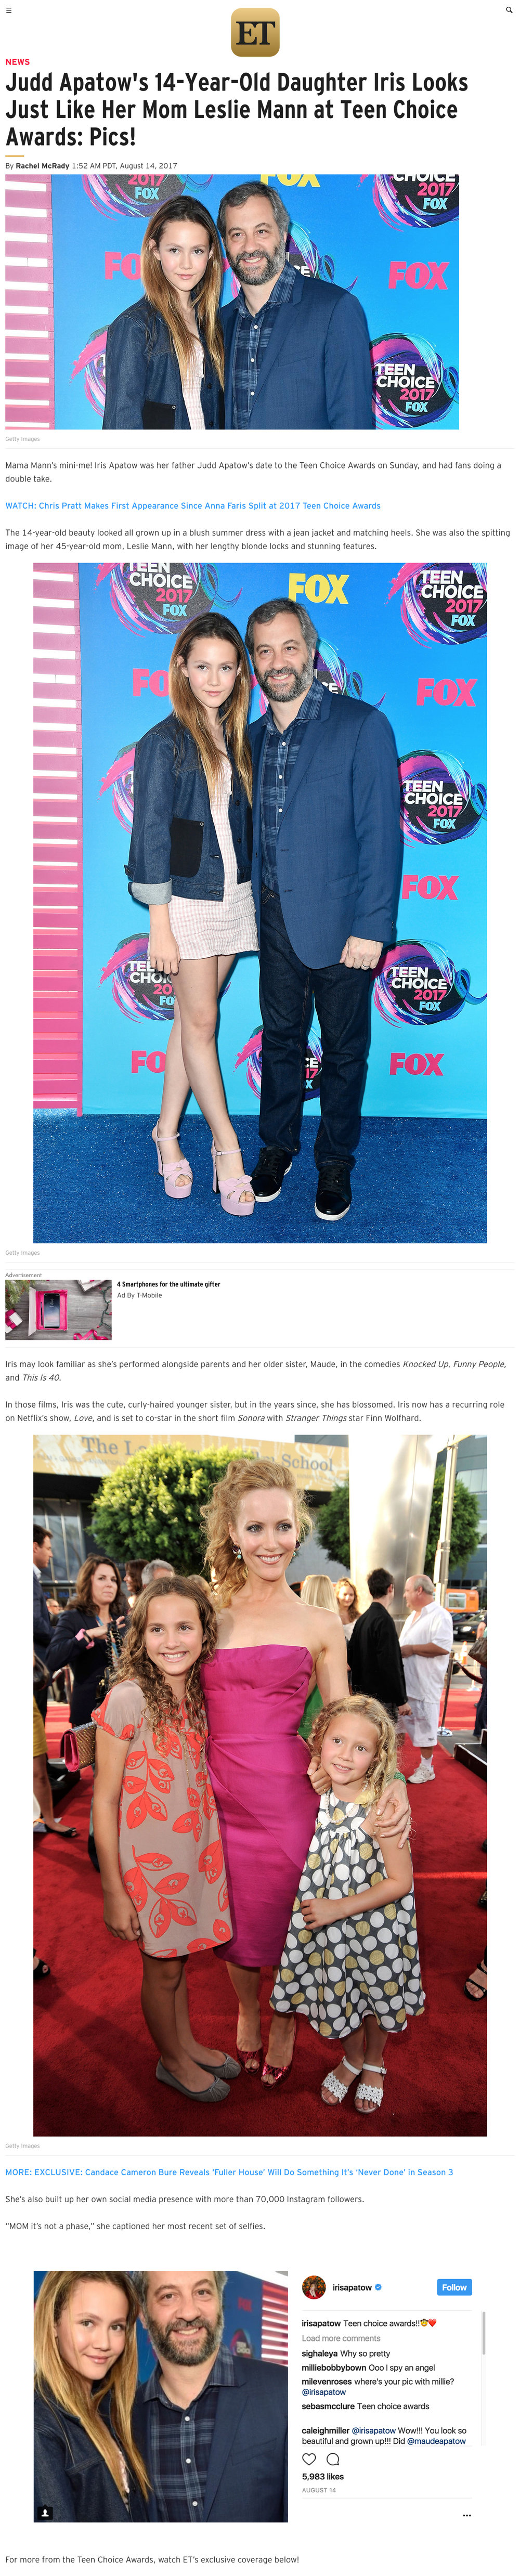 screencapture-etonline-news-223712_judd_apatow_s_14_year_old_daughter_iris_looks_just_like_her_mom_leslie_mann_at_teen_choice_awards_pics-1513602968552-copy.jpg